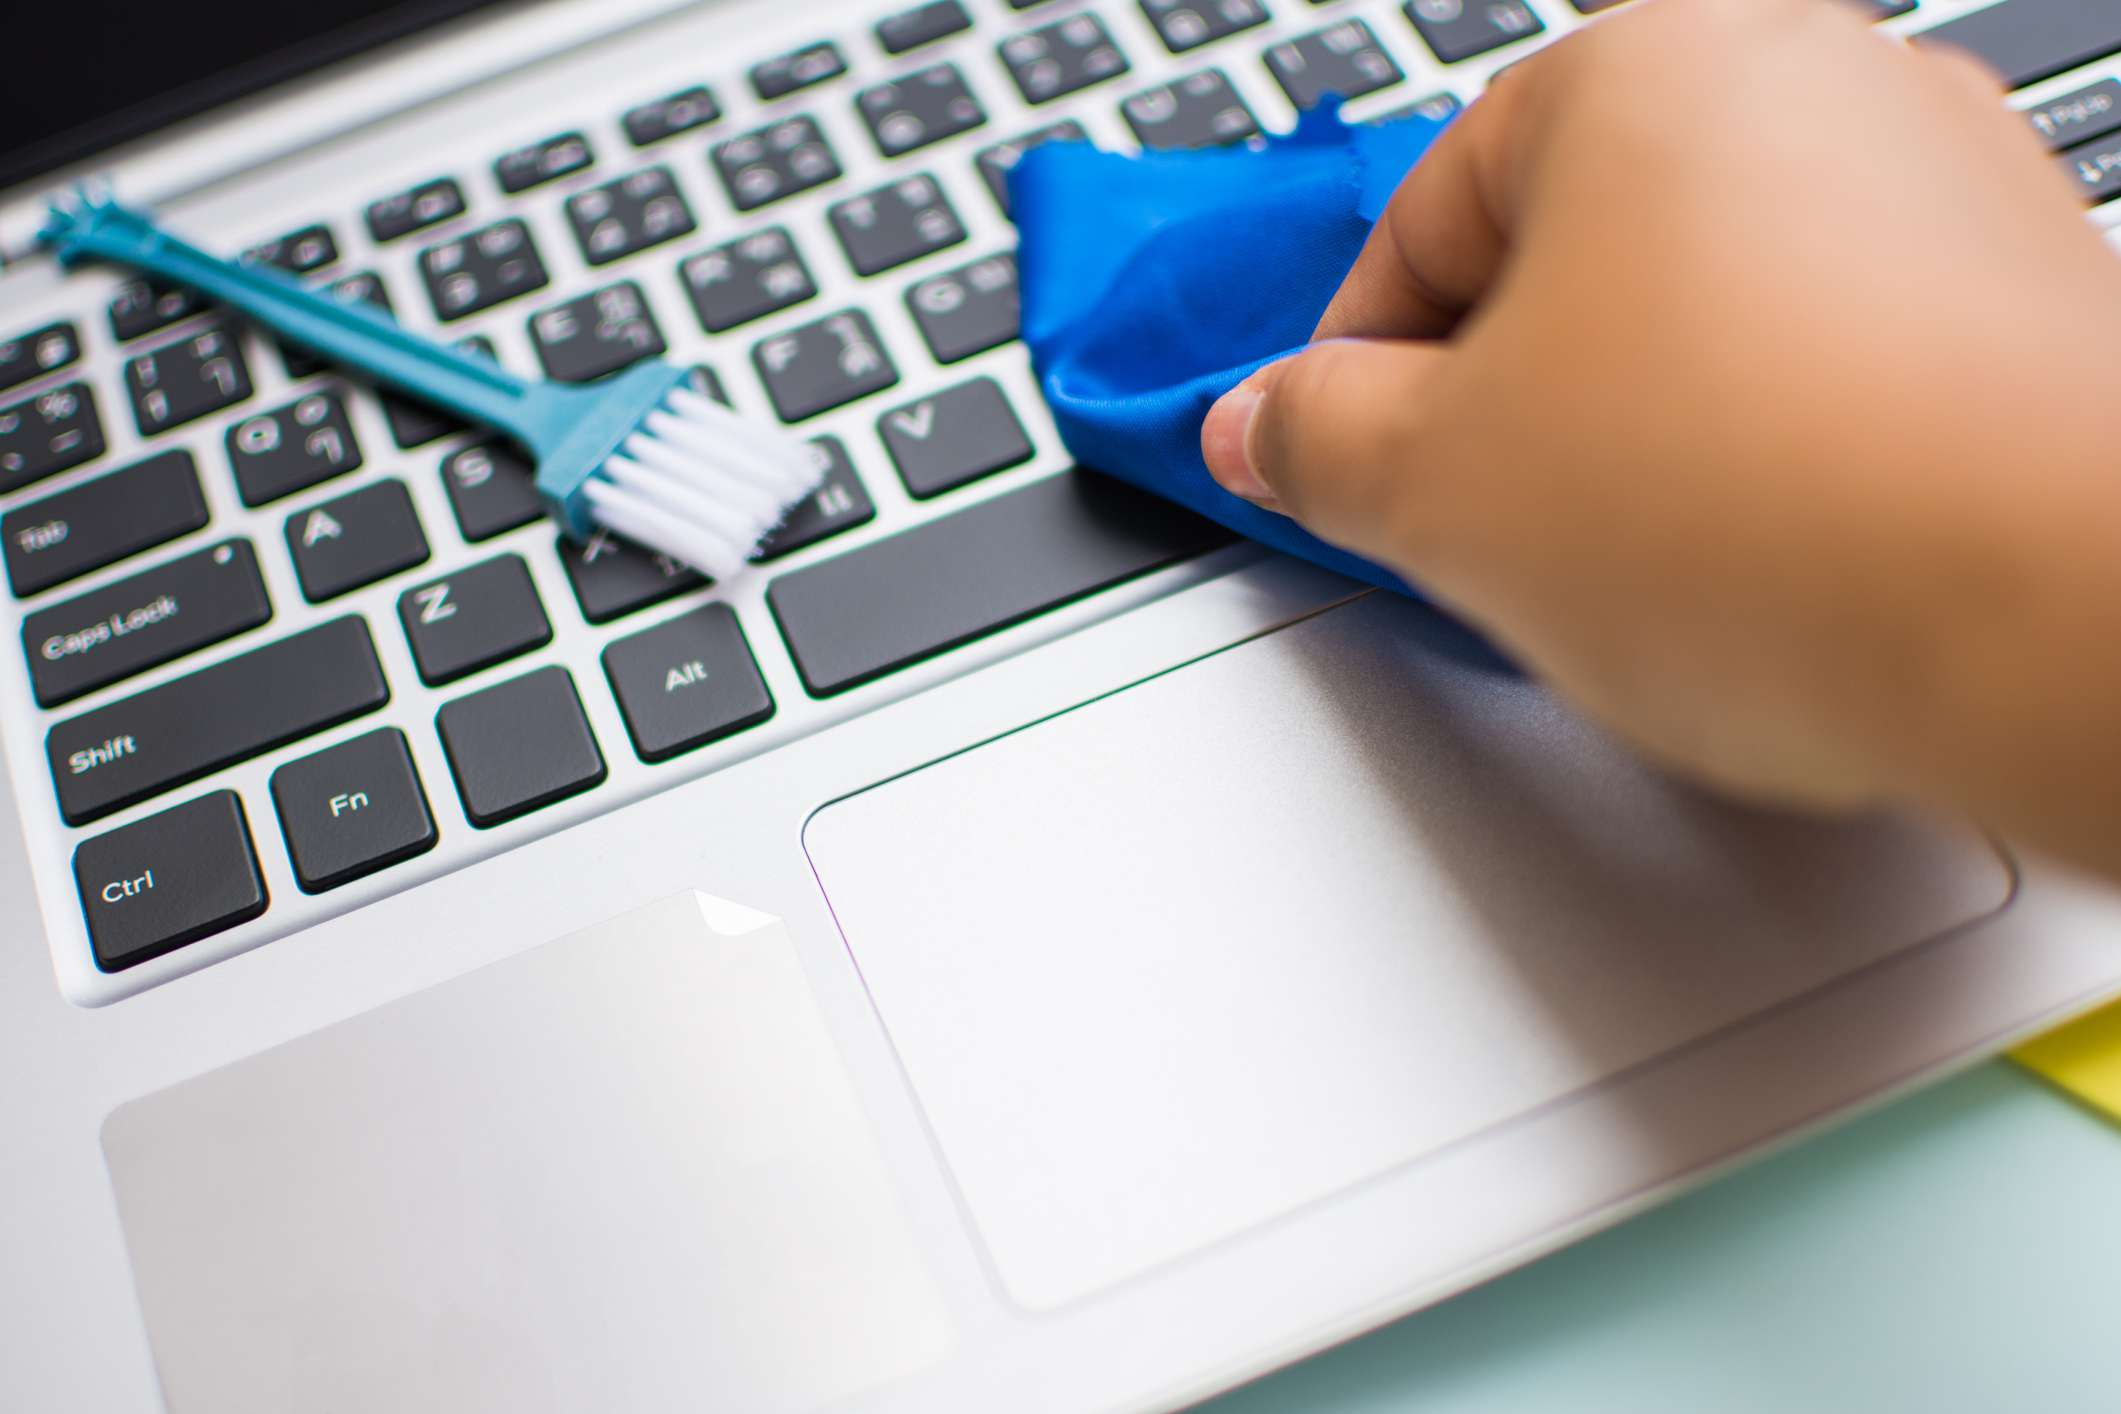 A person wiping a blue cloth over a laptop keyboard with a small brush nearby